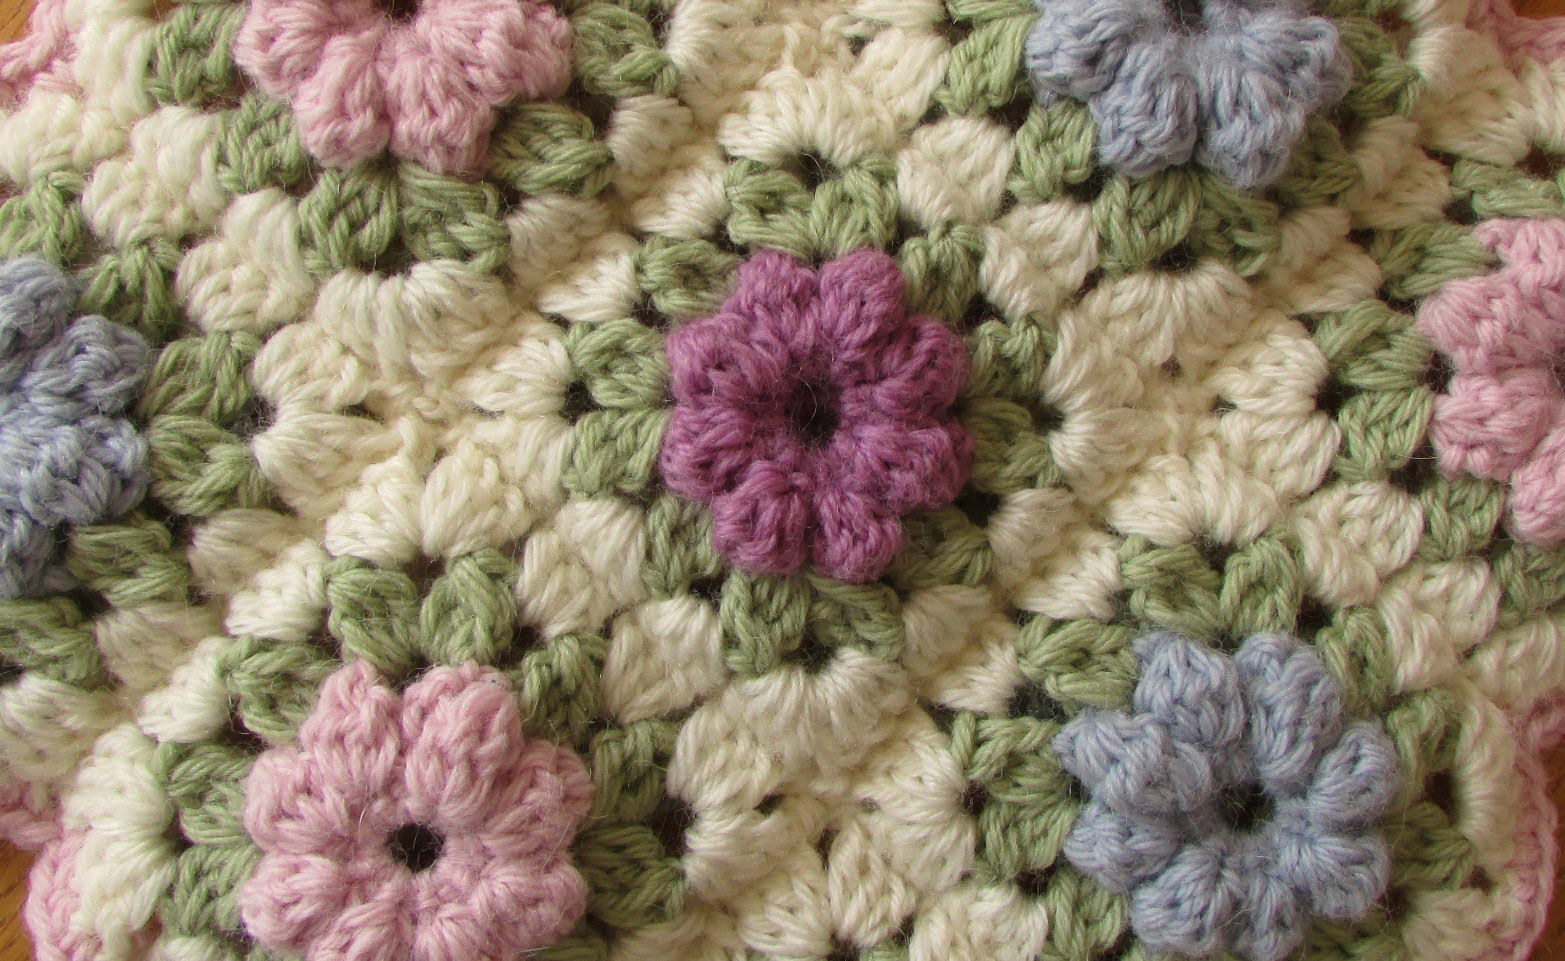 Puff Flower Blanket Crochet Pattern & Video Tutorial